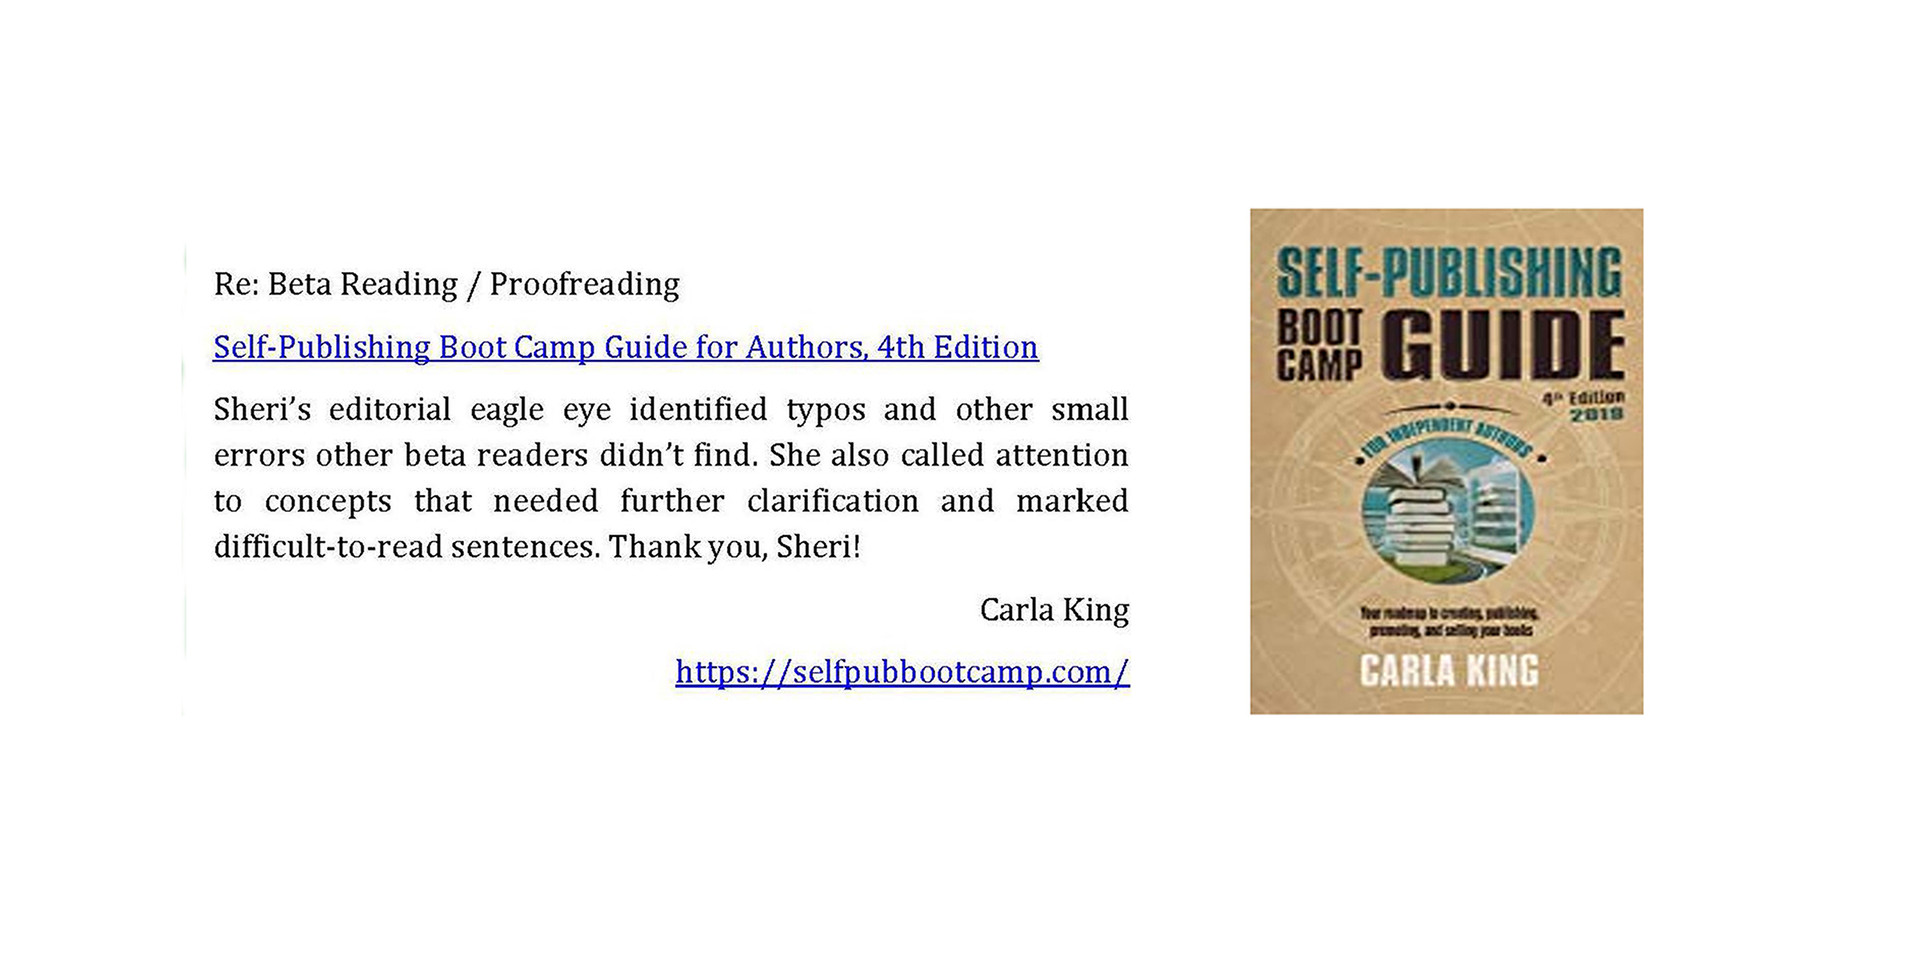 Self-Publishing Boot Camp Guide